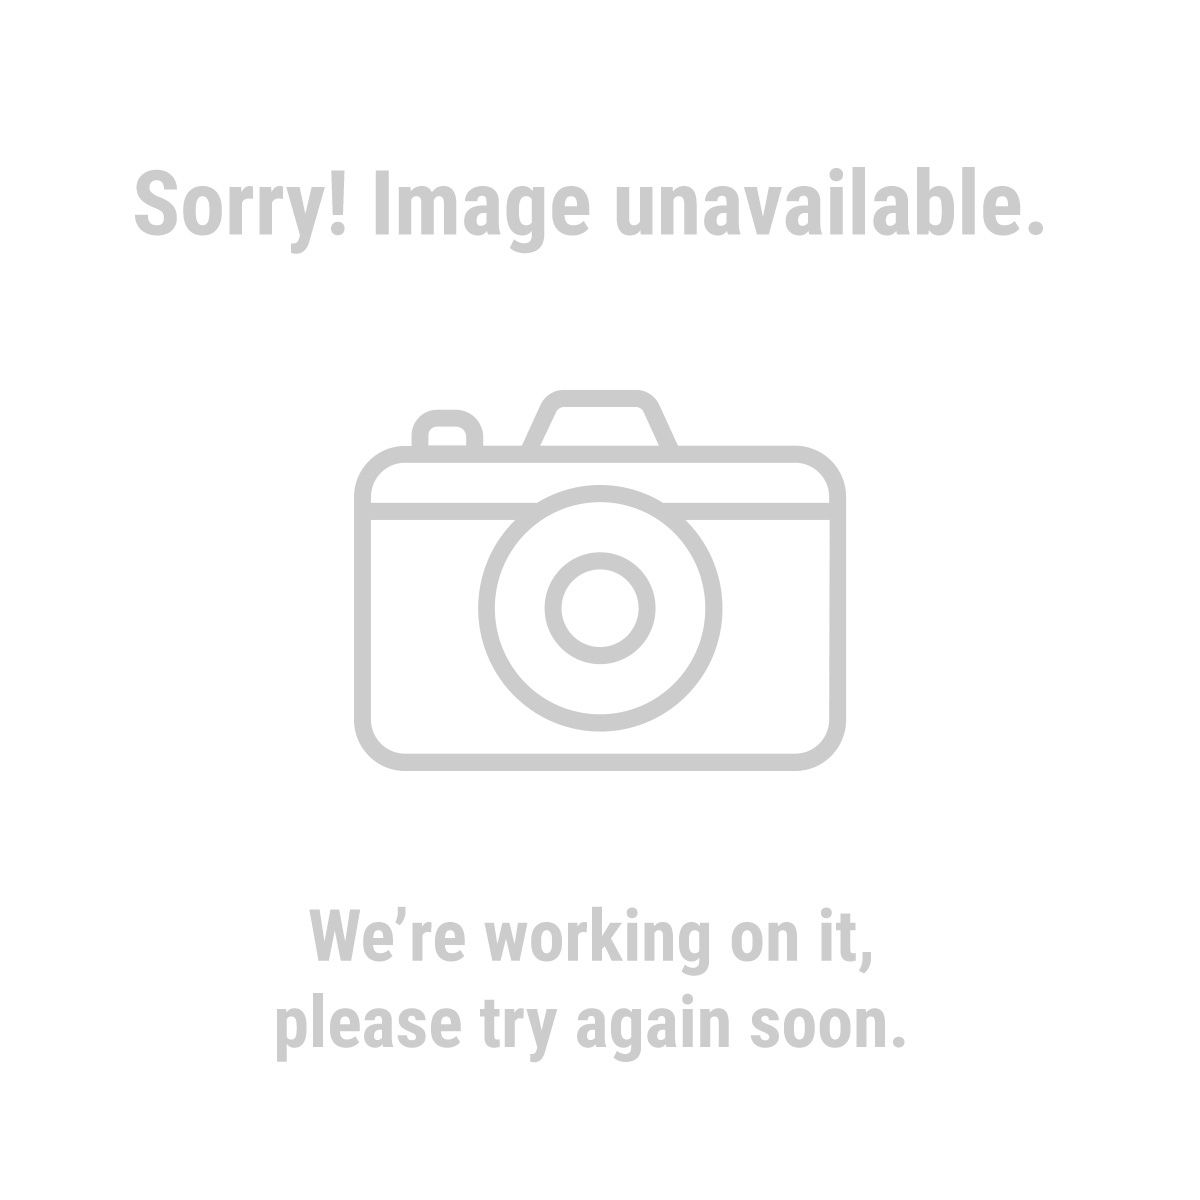 Predator Outdoor Power Equipment 62200 3100 PSI, 2.8 GPM, 6.5 HP (212cc) Pressure Washer EPA